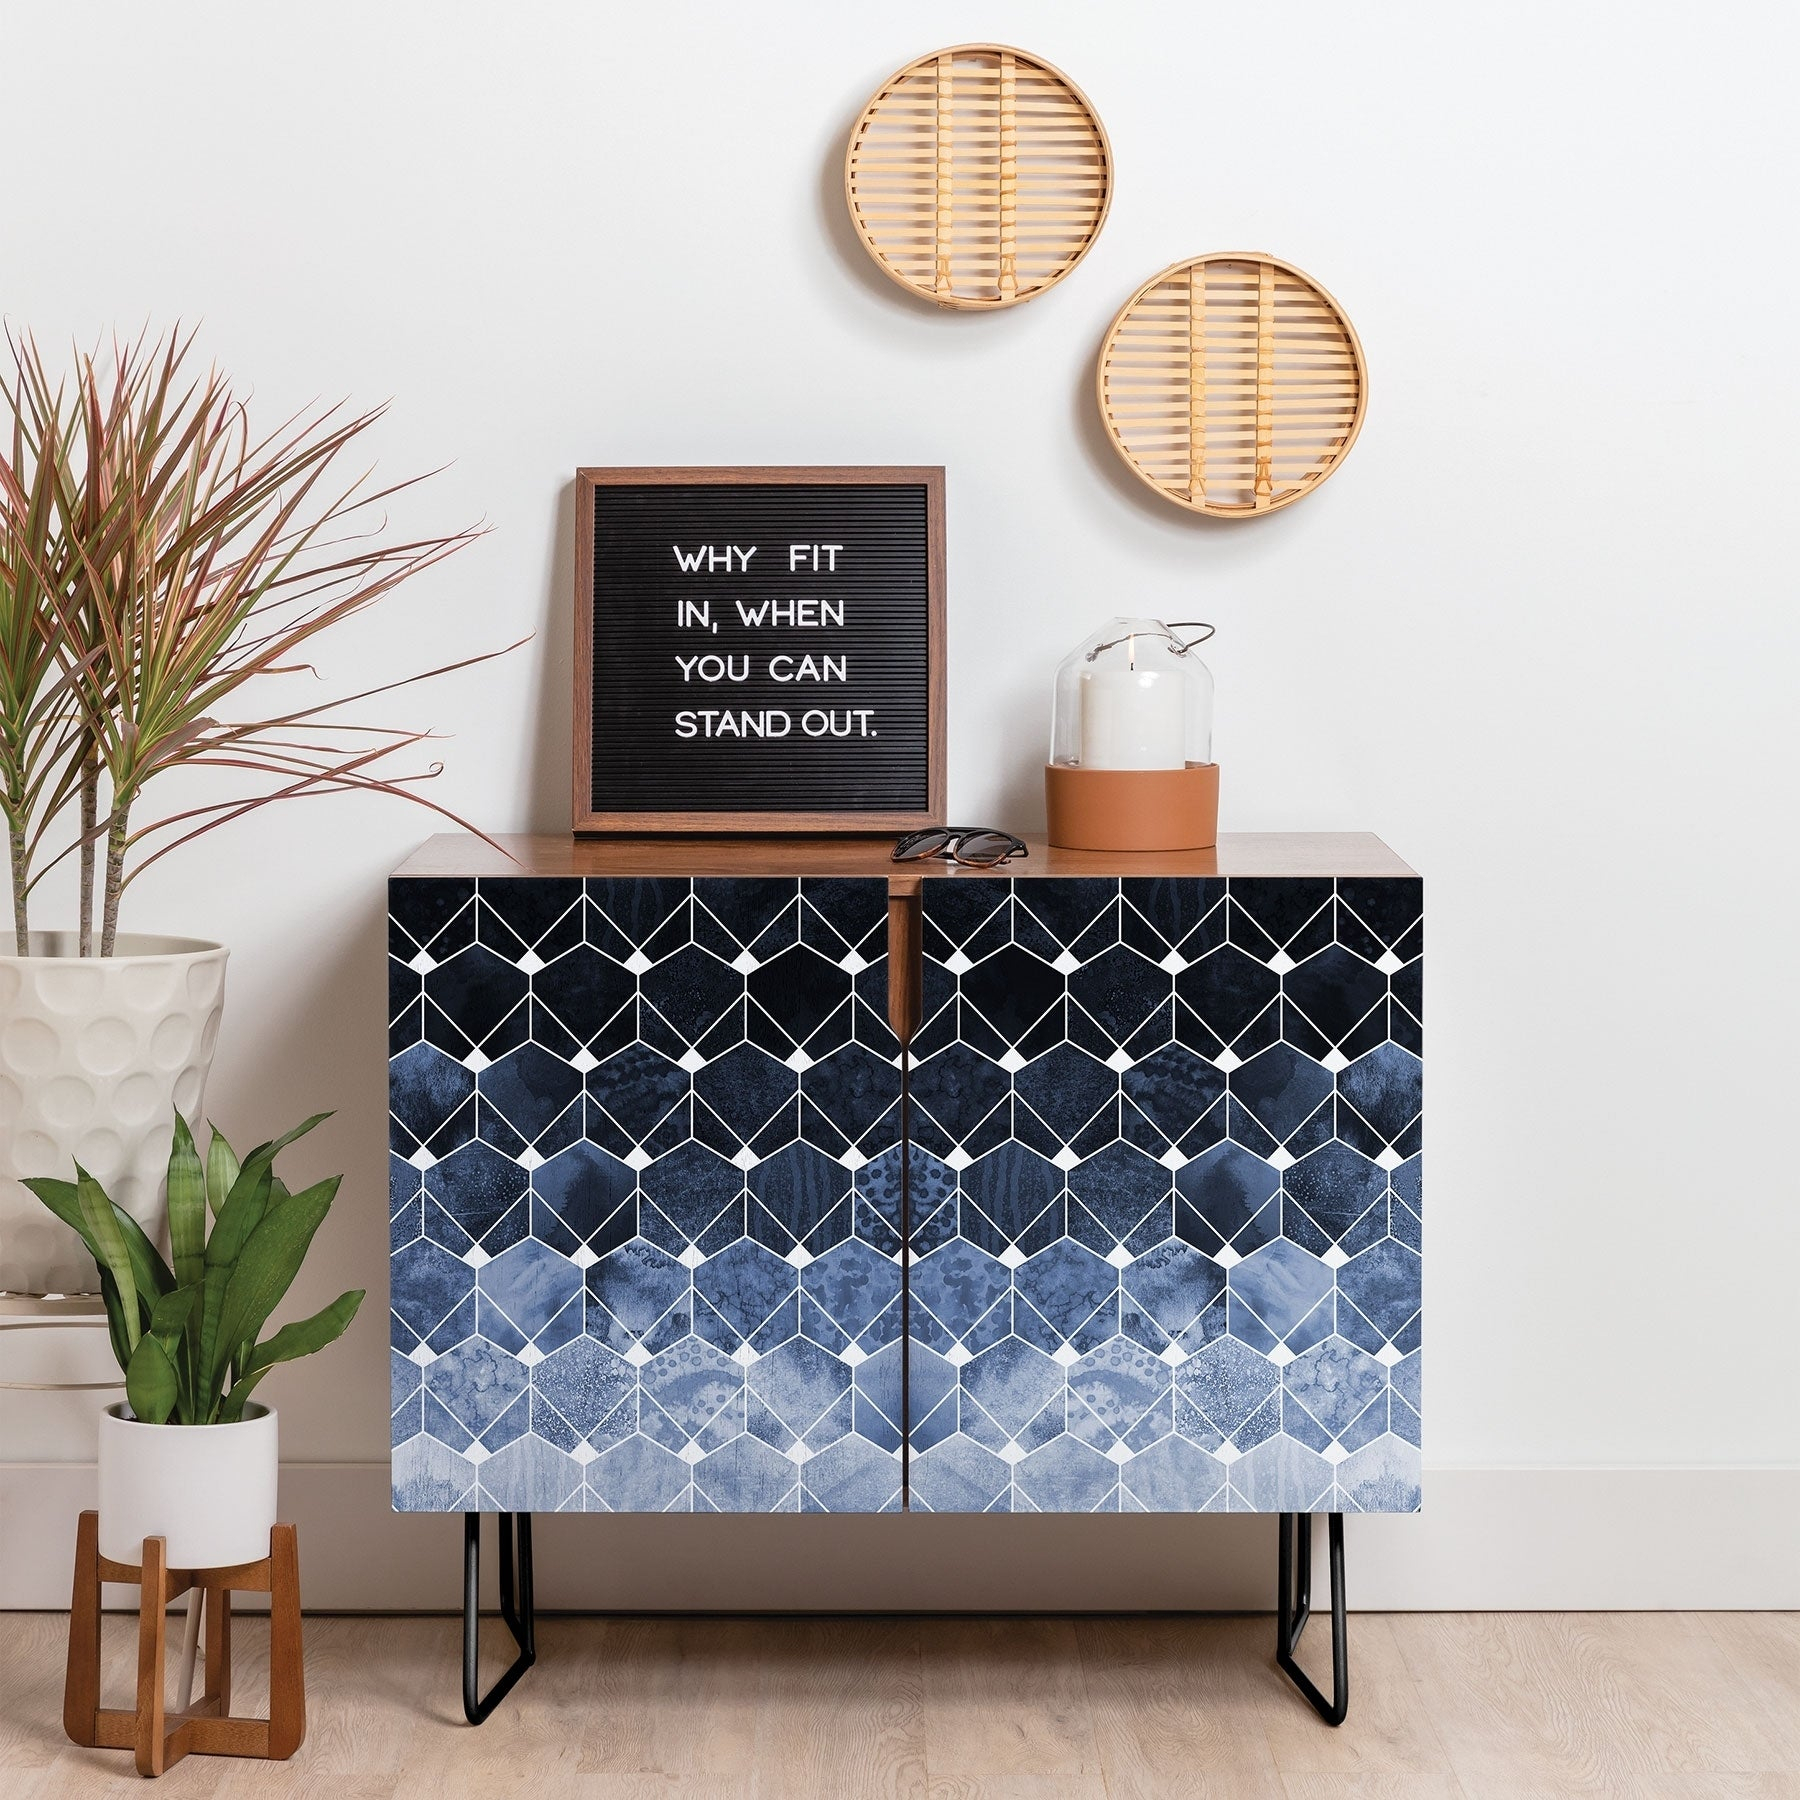 Deny Designs Blue Hexagons And Diamonds Credenza (Birch Or Walnut, 2 Leg  Options) pertaining to Line Geo Credenzas (Image 6 of 30)